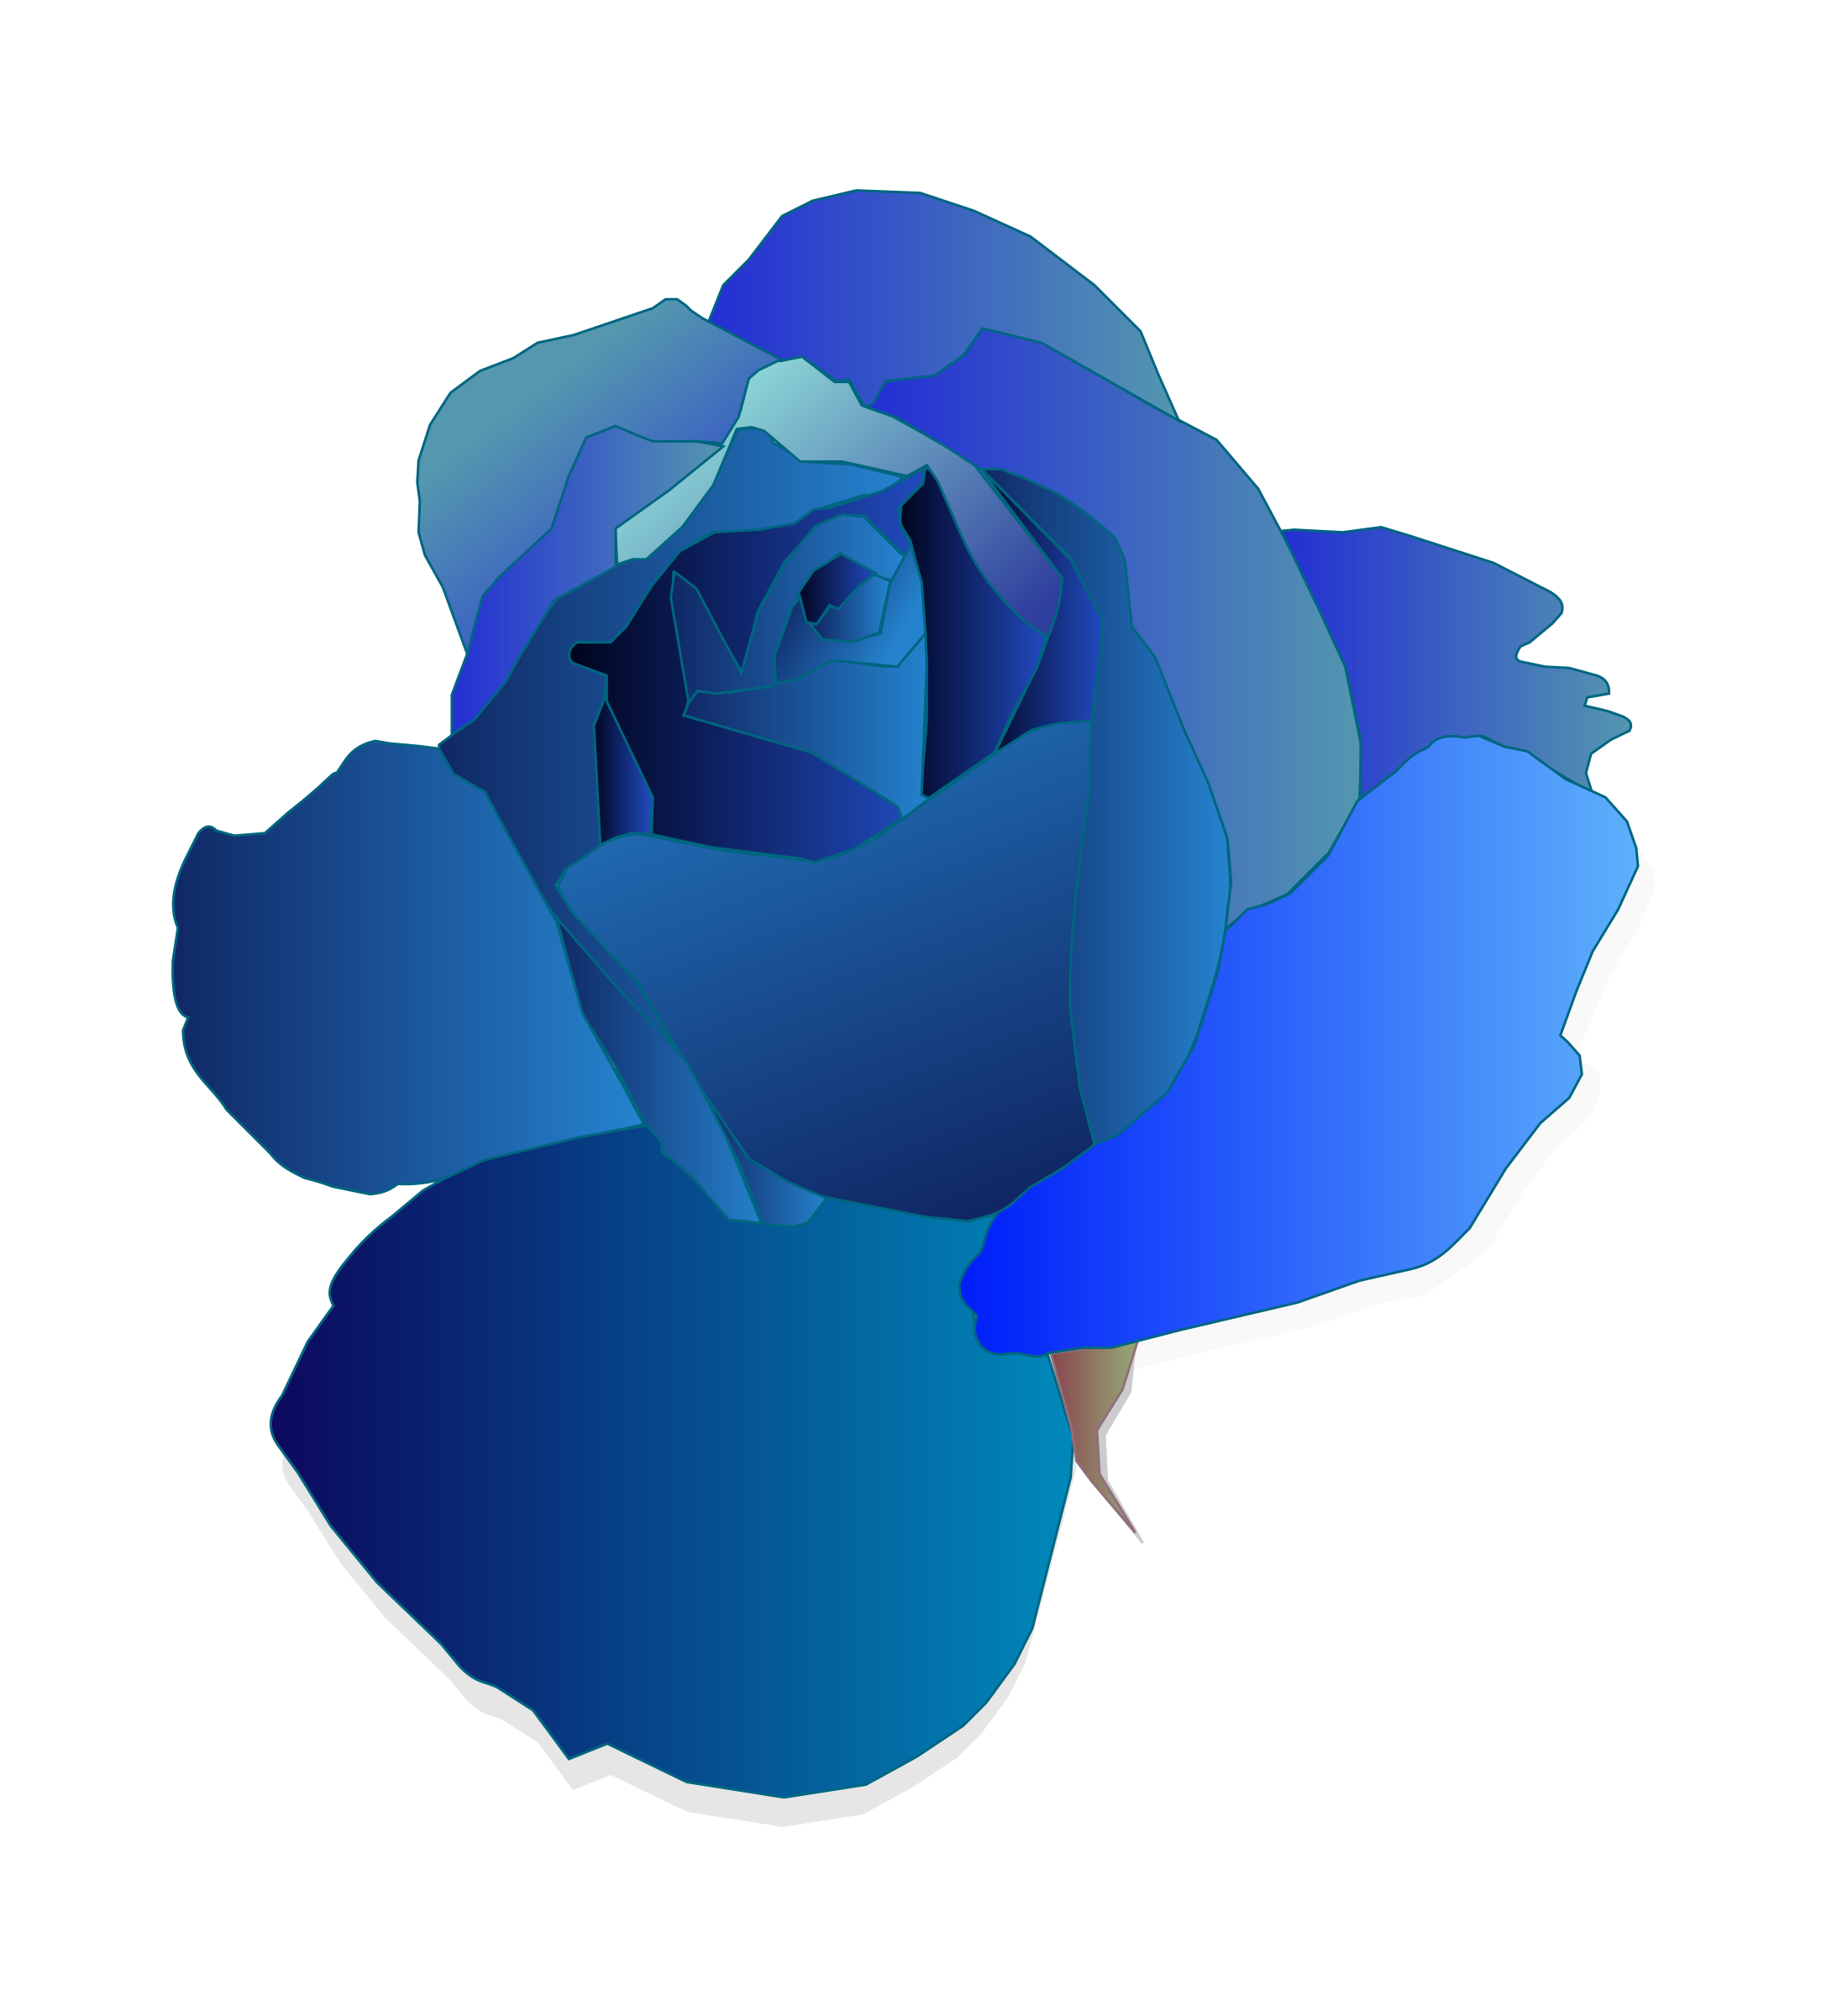 Blue Rose by mirys